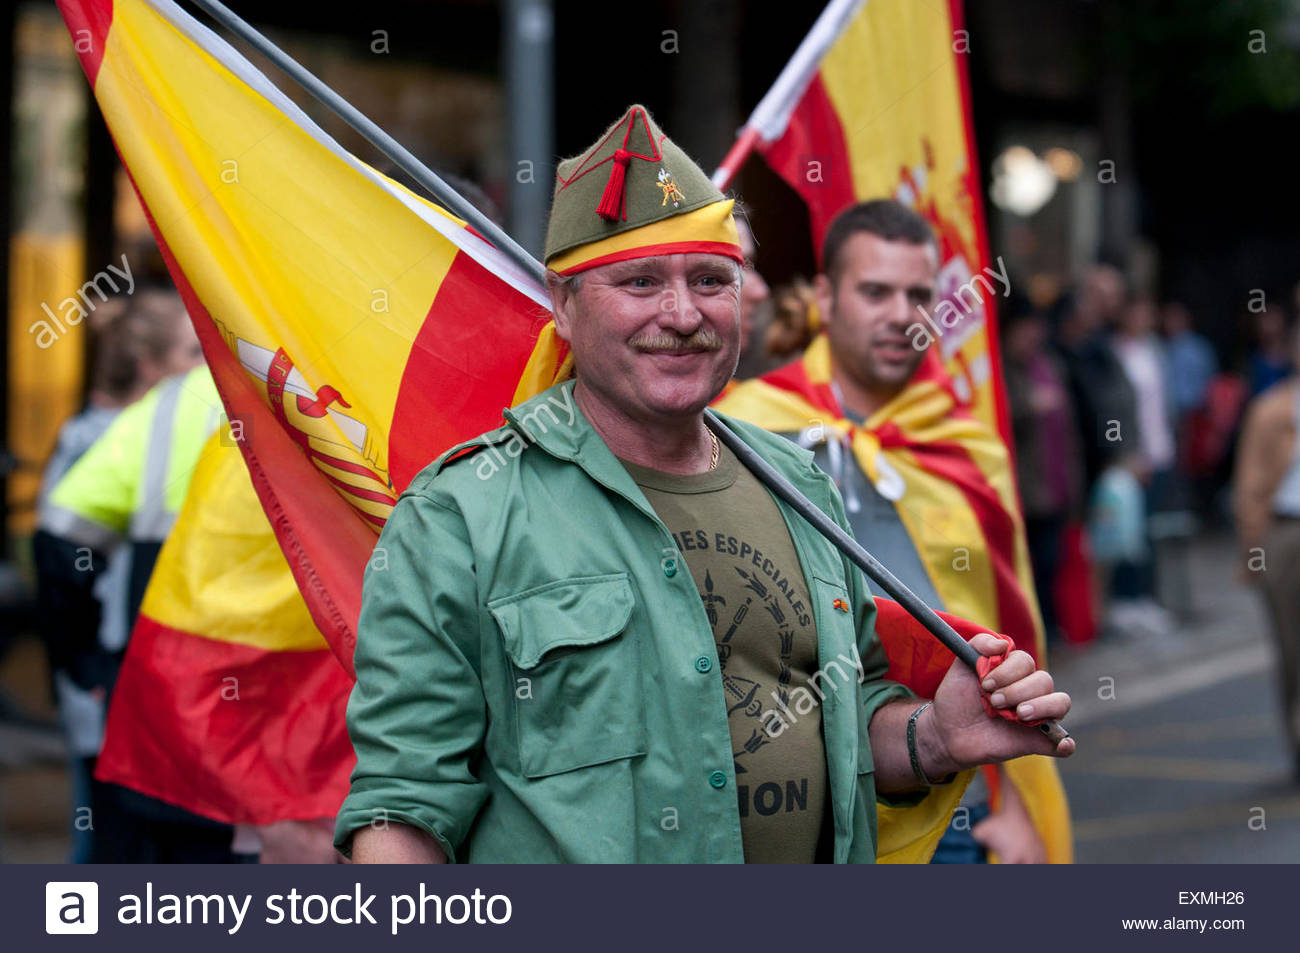 Barcelona, Spain. 12th Oct, 2014 Demonstrators doing the fascist salute during the Spanish Ultra Nationalism speech - Stock Image